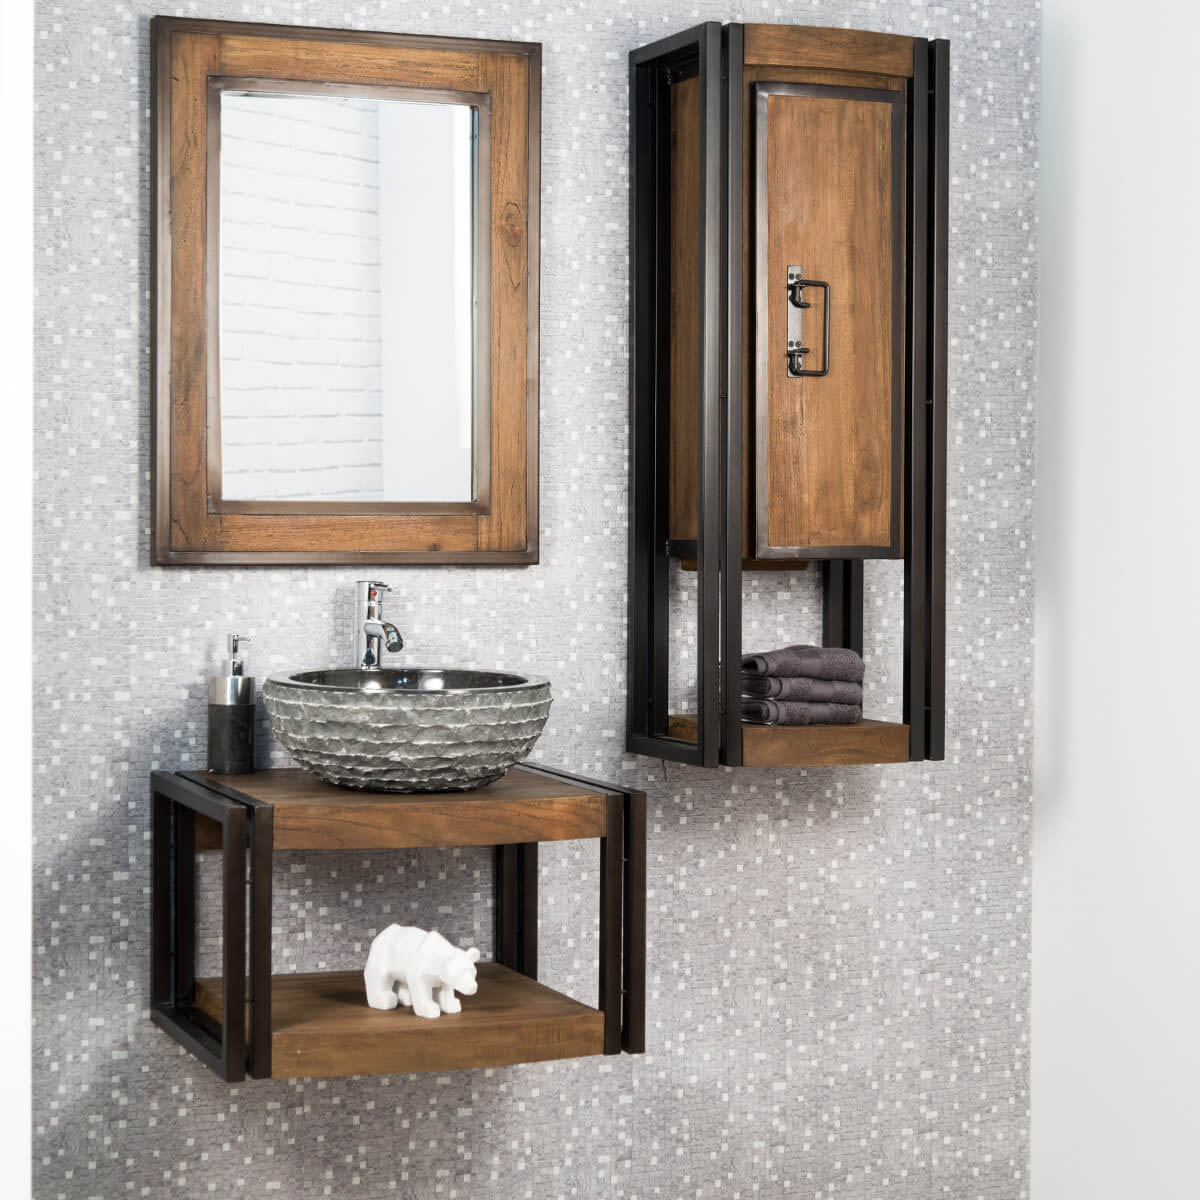 miroir de salle de bain l gance bois m tal 60x80. Black Bedroom Furniture Sets. Home Design Ideas